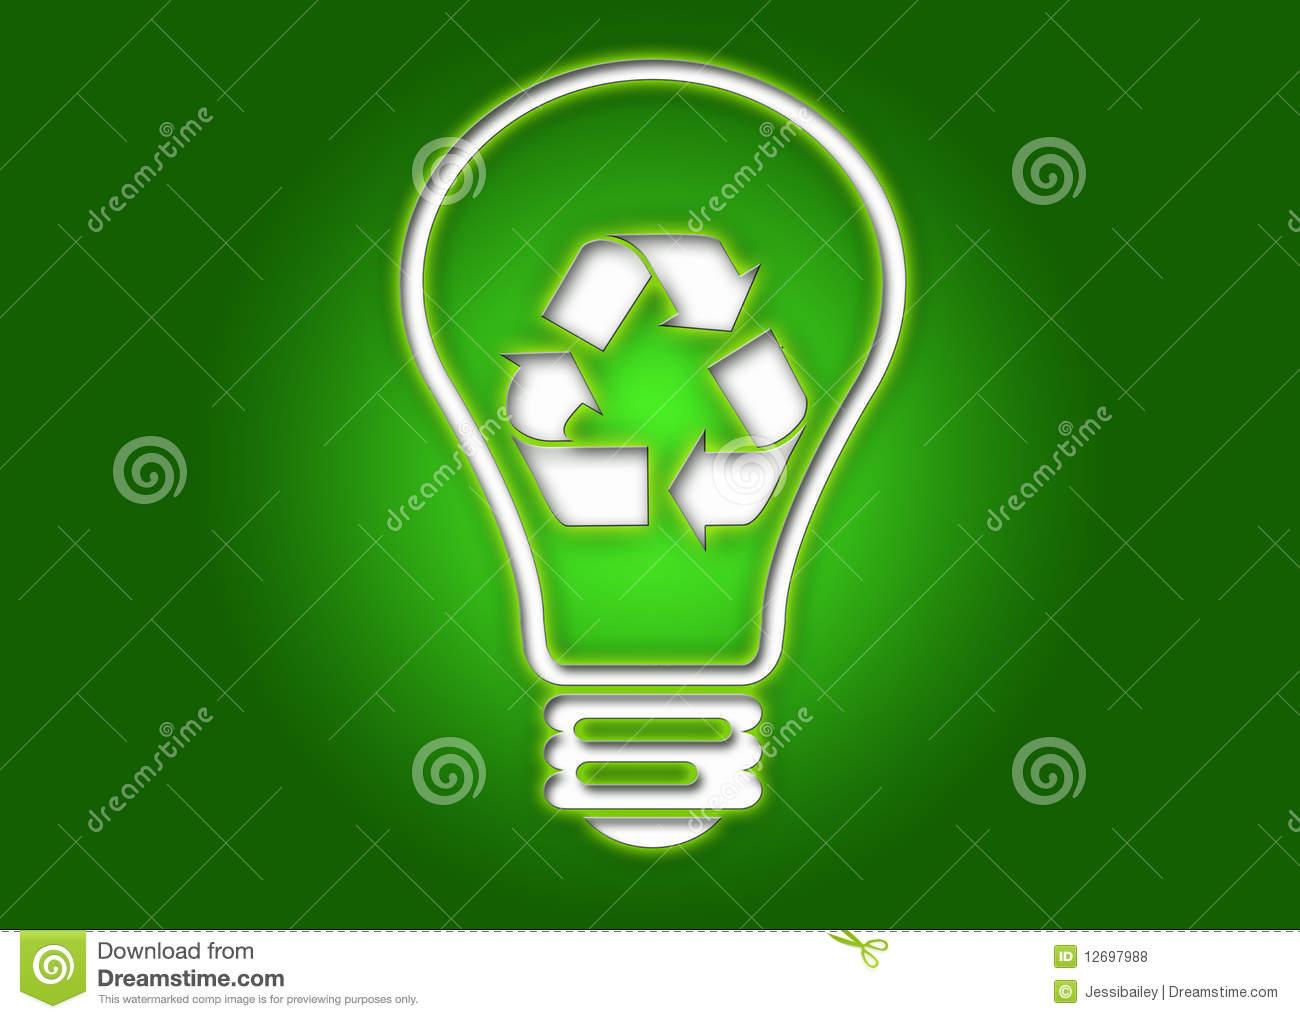 Recycling Light Bulb Royalty Free Stock Photos Image 12697988